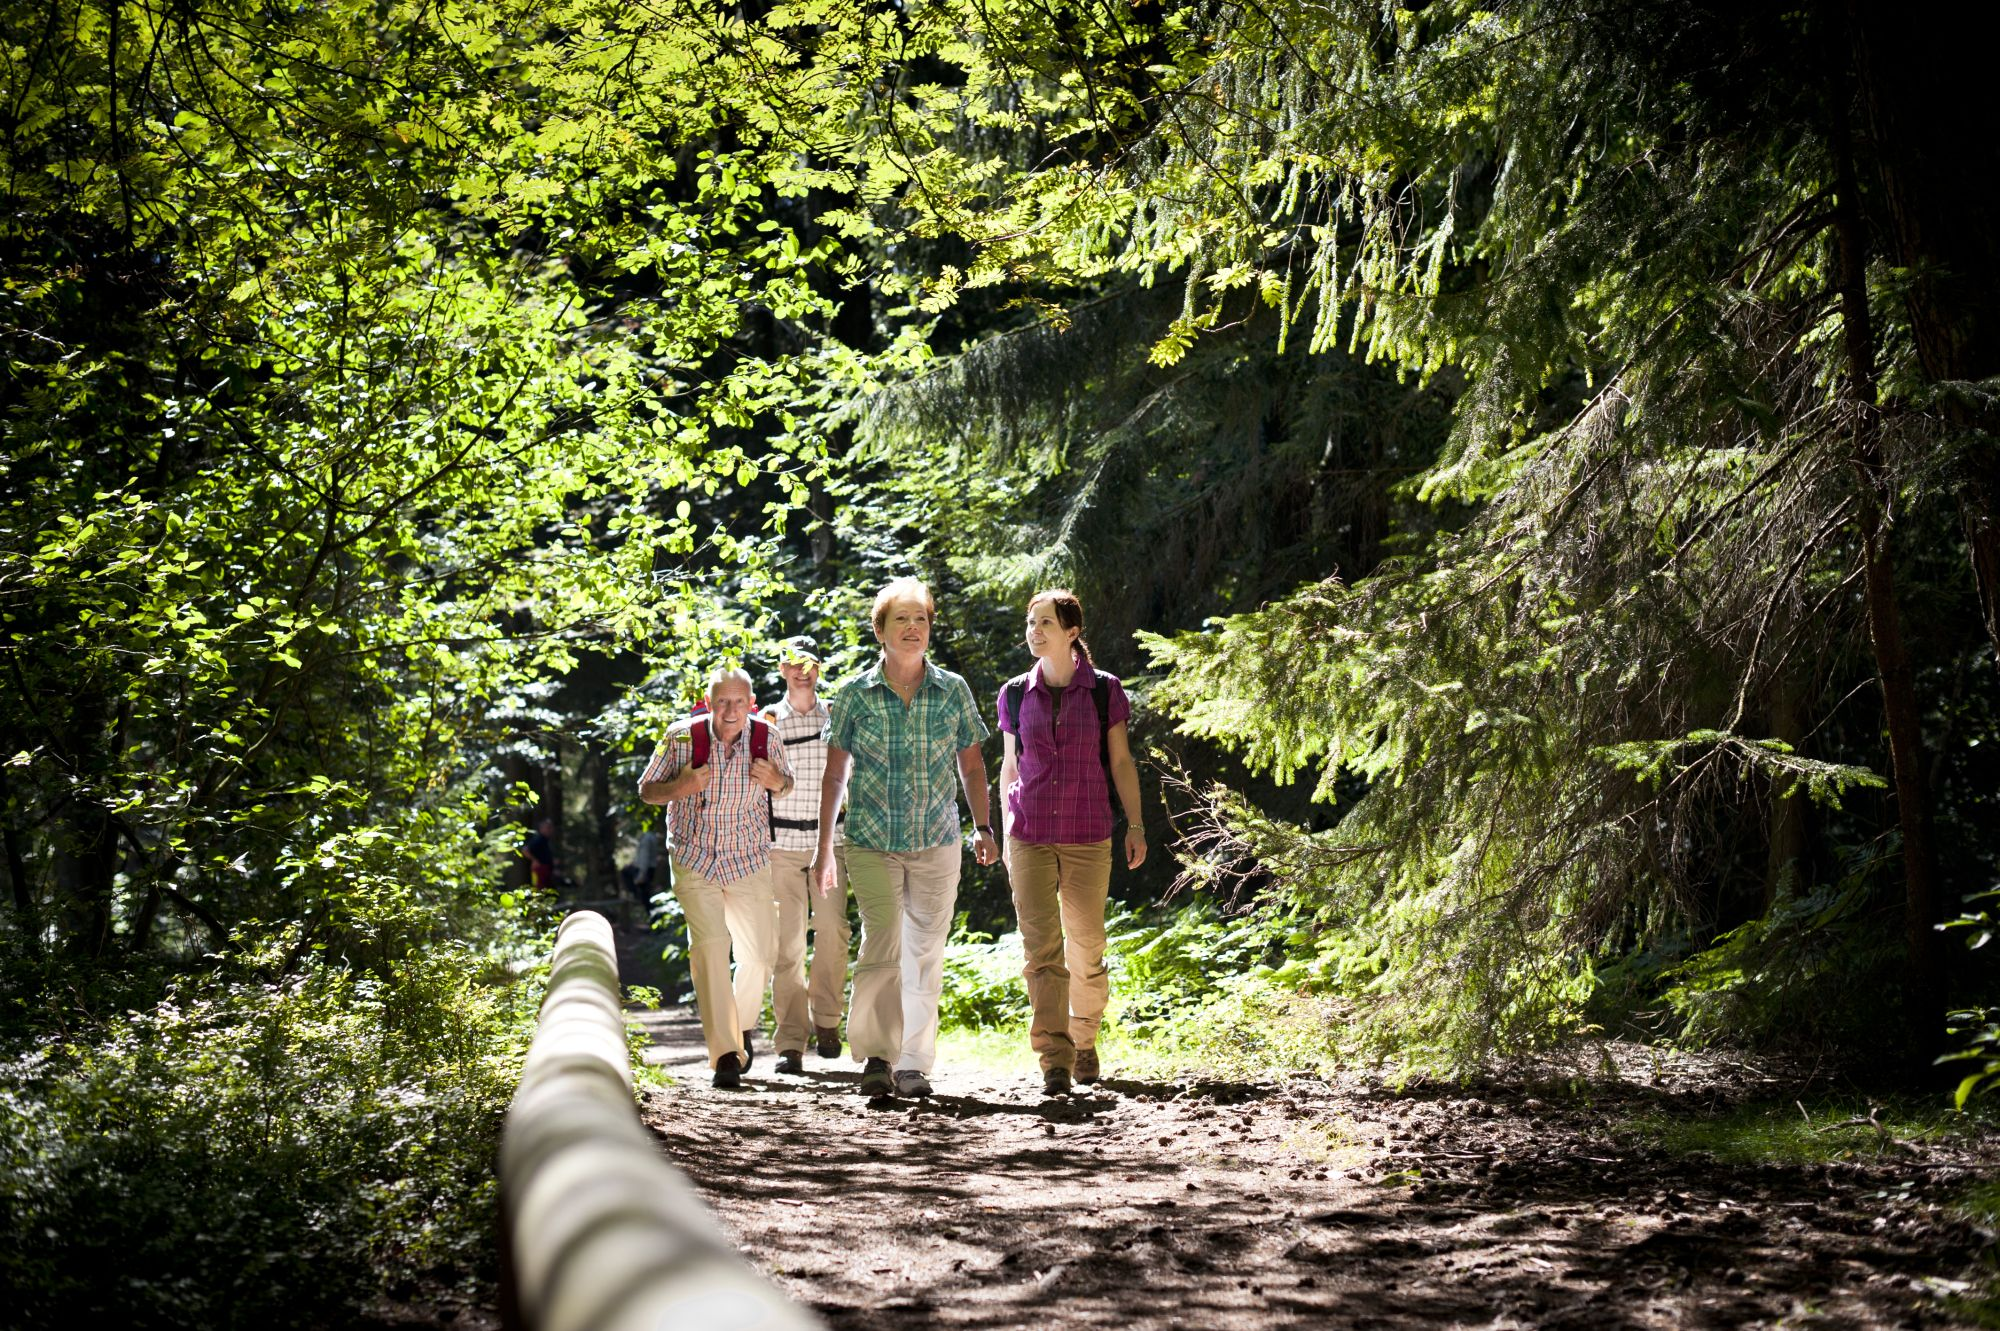 Naturnahes Wandern Gruppe